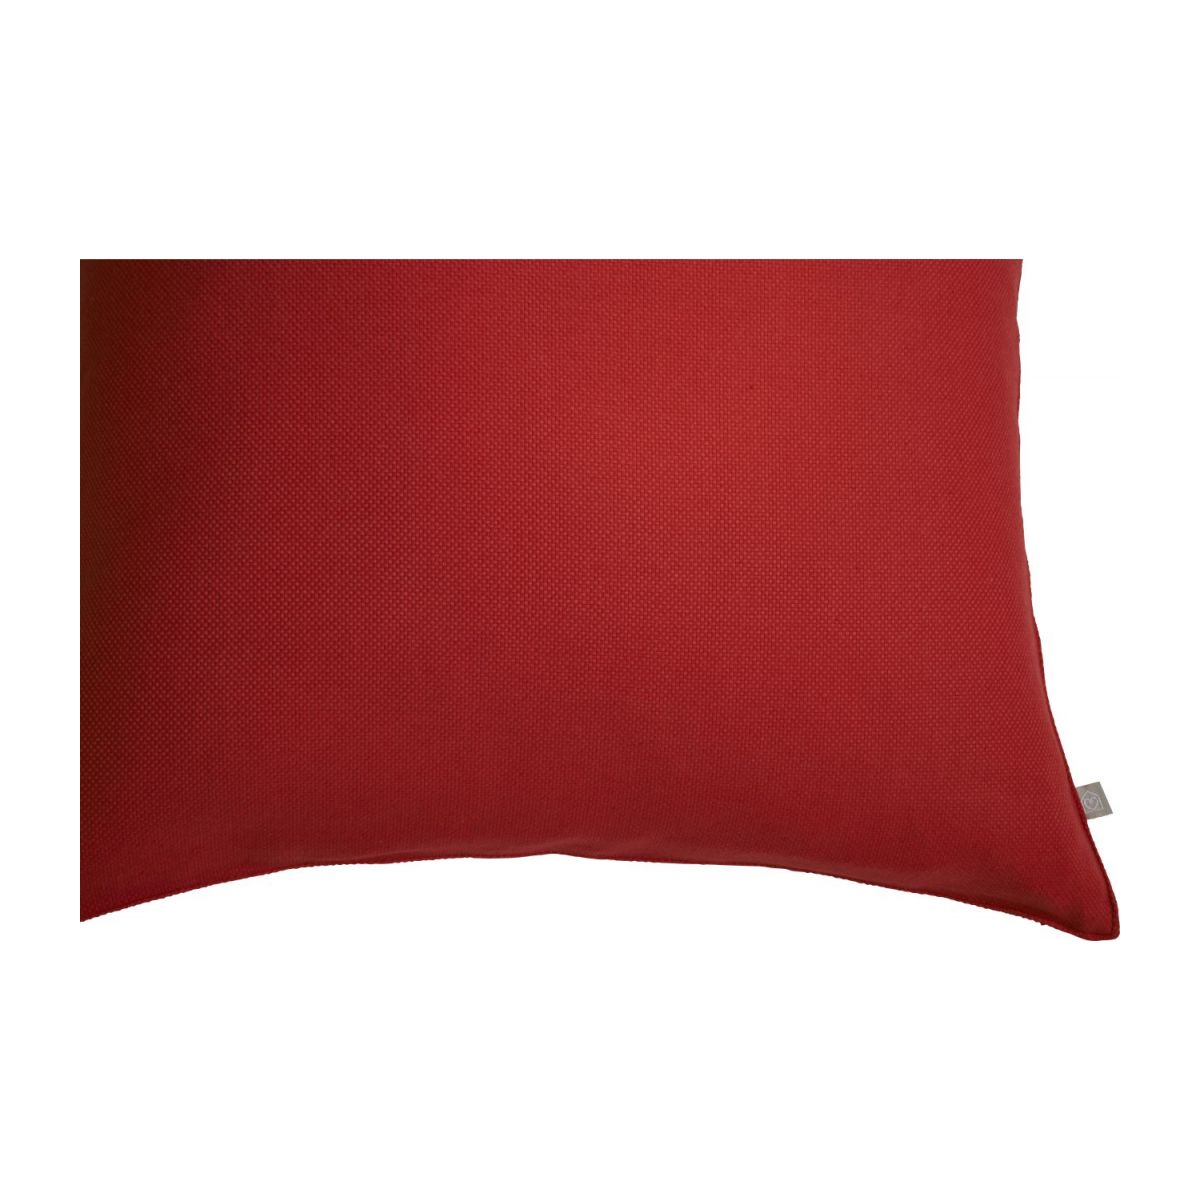 Red cushion 50x50cm n°6